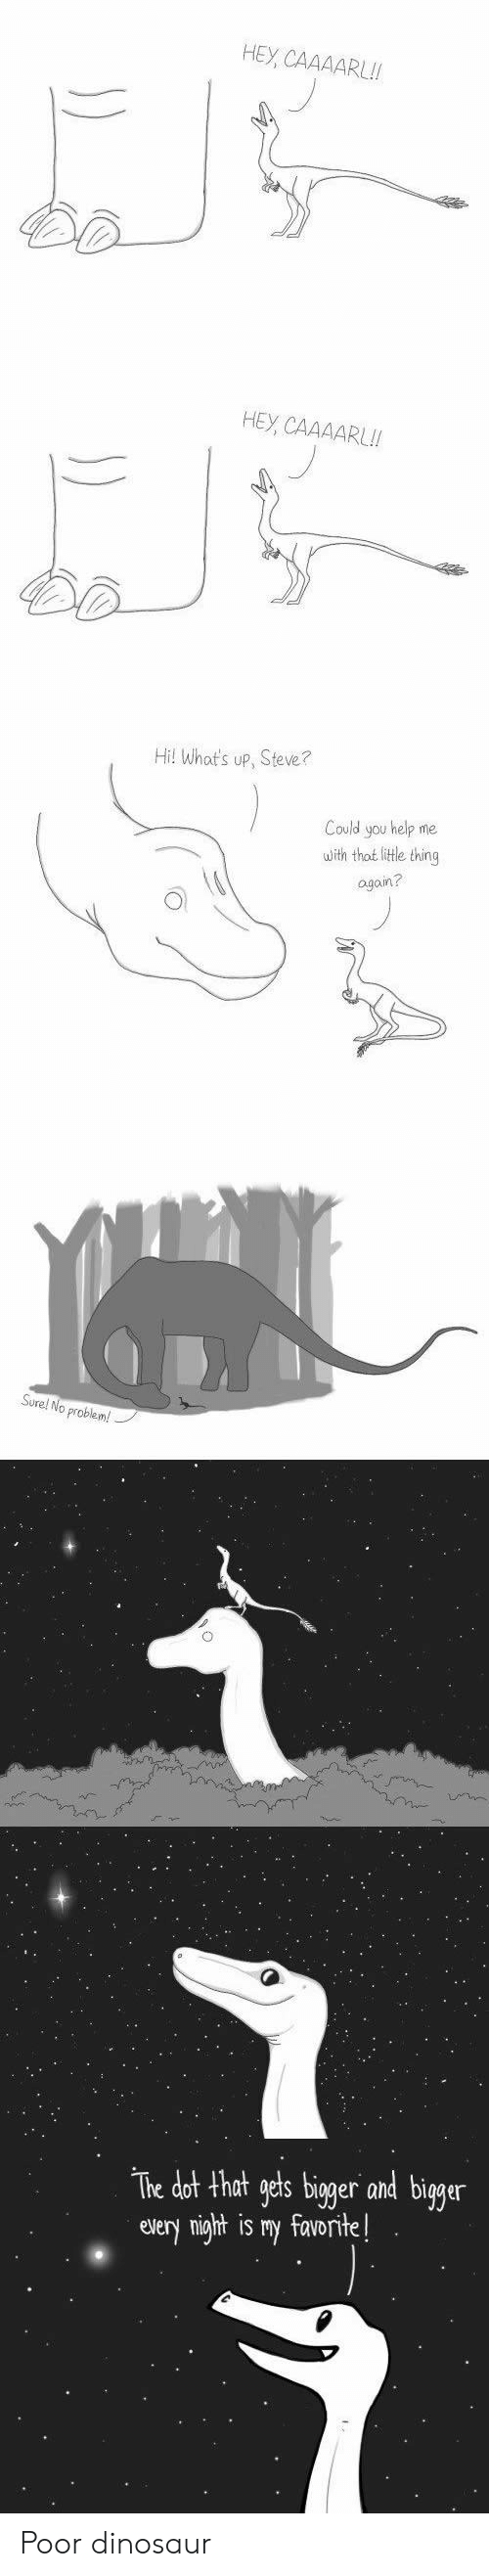 Dinosaur, Help, and Funny and Sad: HEY, CAAAARL!!  НЕУ, СААААRL!  Hil What's up, Steve?  Could you help me  with that litle thing  again?  Sure! No problem!  The dot that gets bigger and bigger  every night is my favorite! Poor dinosaur